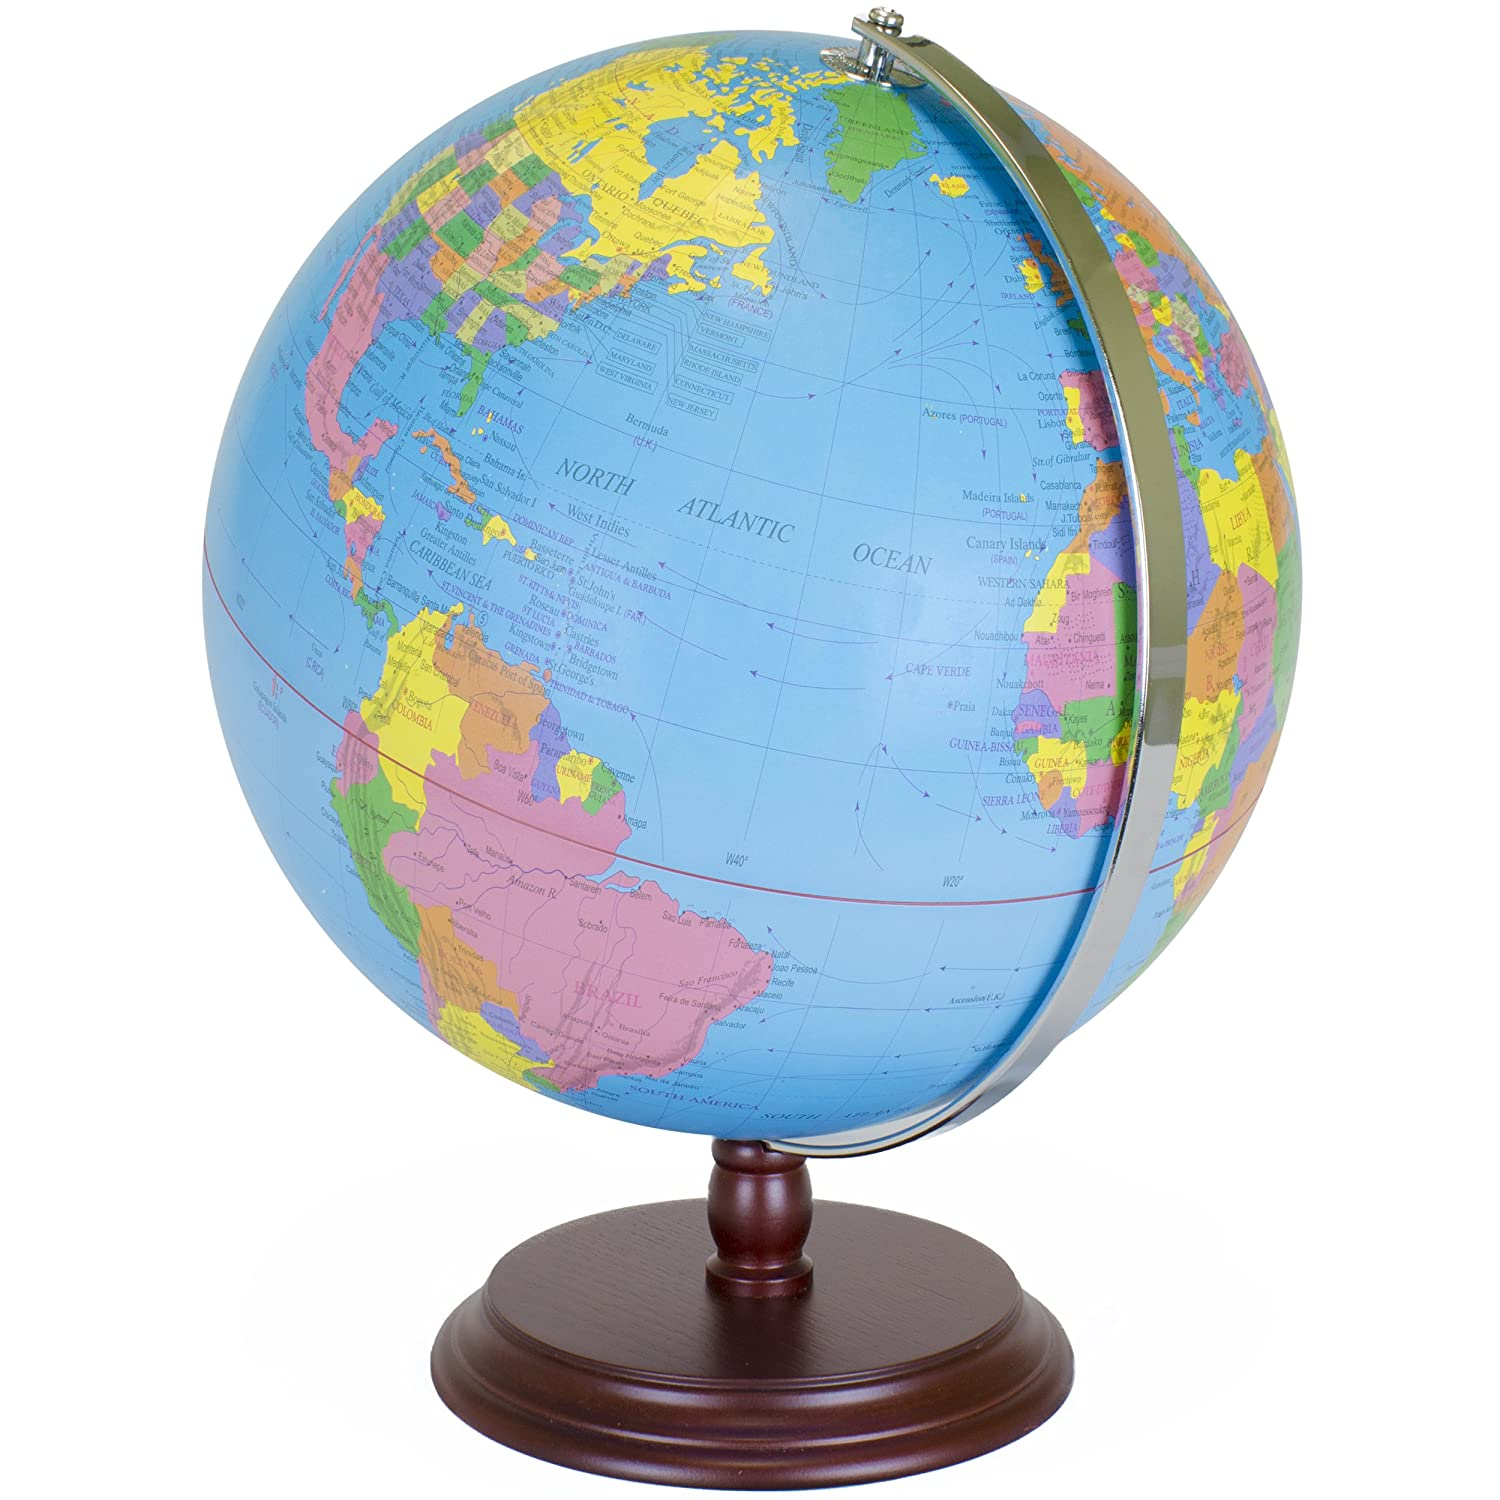 World Globe | 12 Inch Desktop Atlas with Antique Stand | Earth with Political Maps + Blue Oceans for Educational Geography | Classic Globo Vintage Spinning Perfect for Geographical National Kids Toys Novo Basics